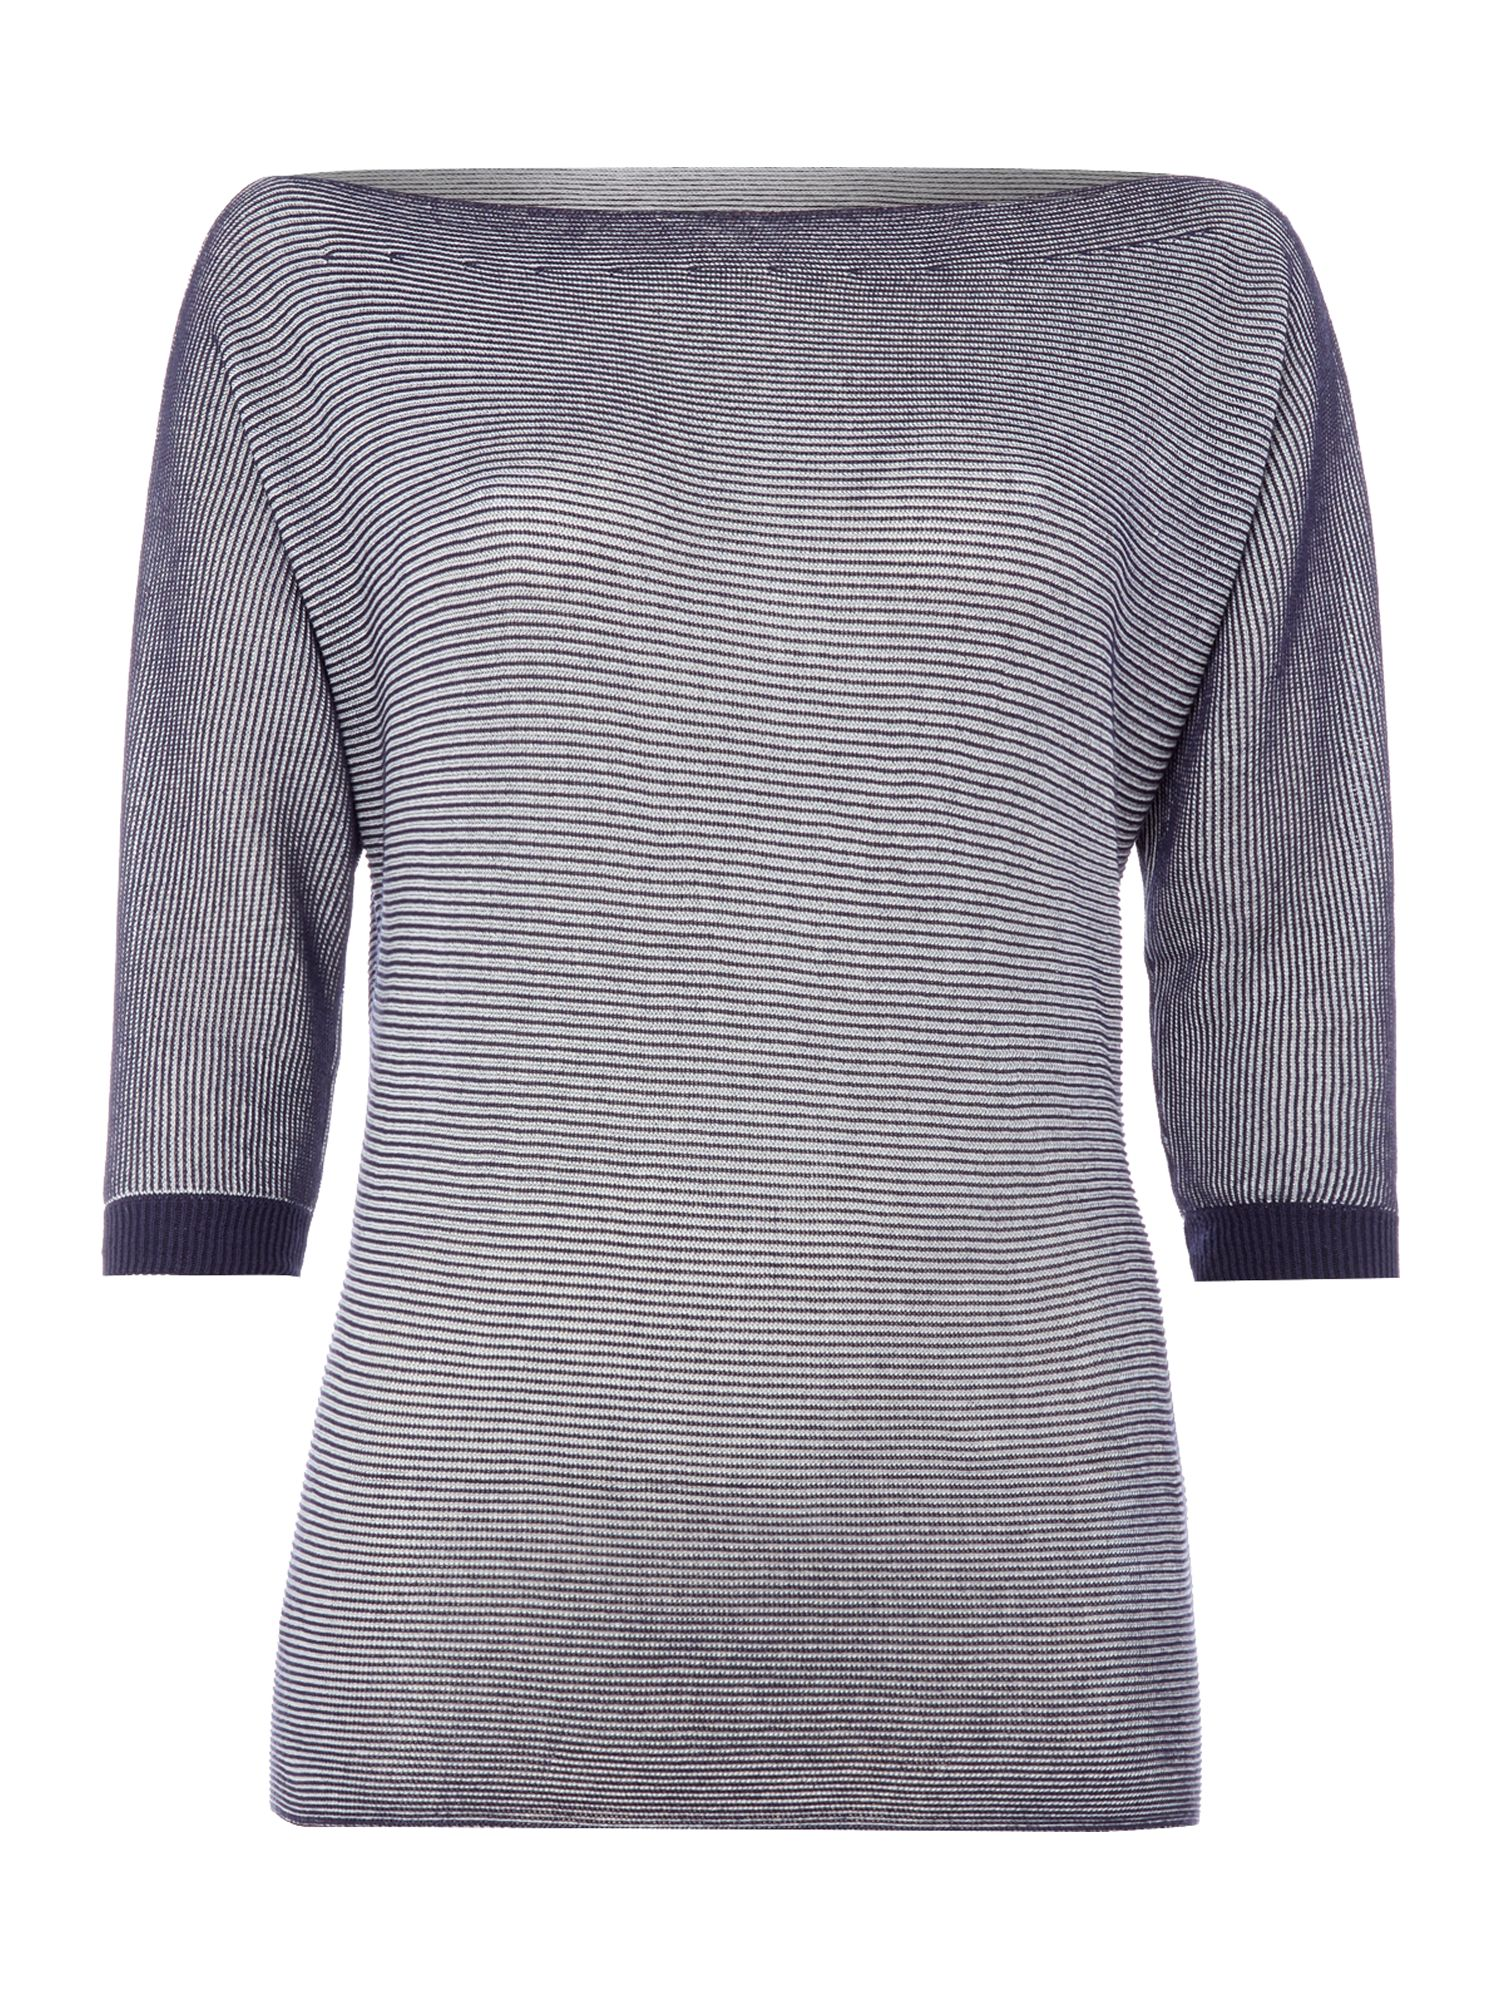 Armani Jeans Long sleeve stripe slit neck top in riga bianco, Blue